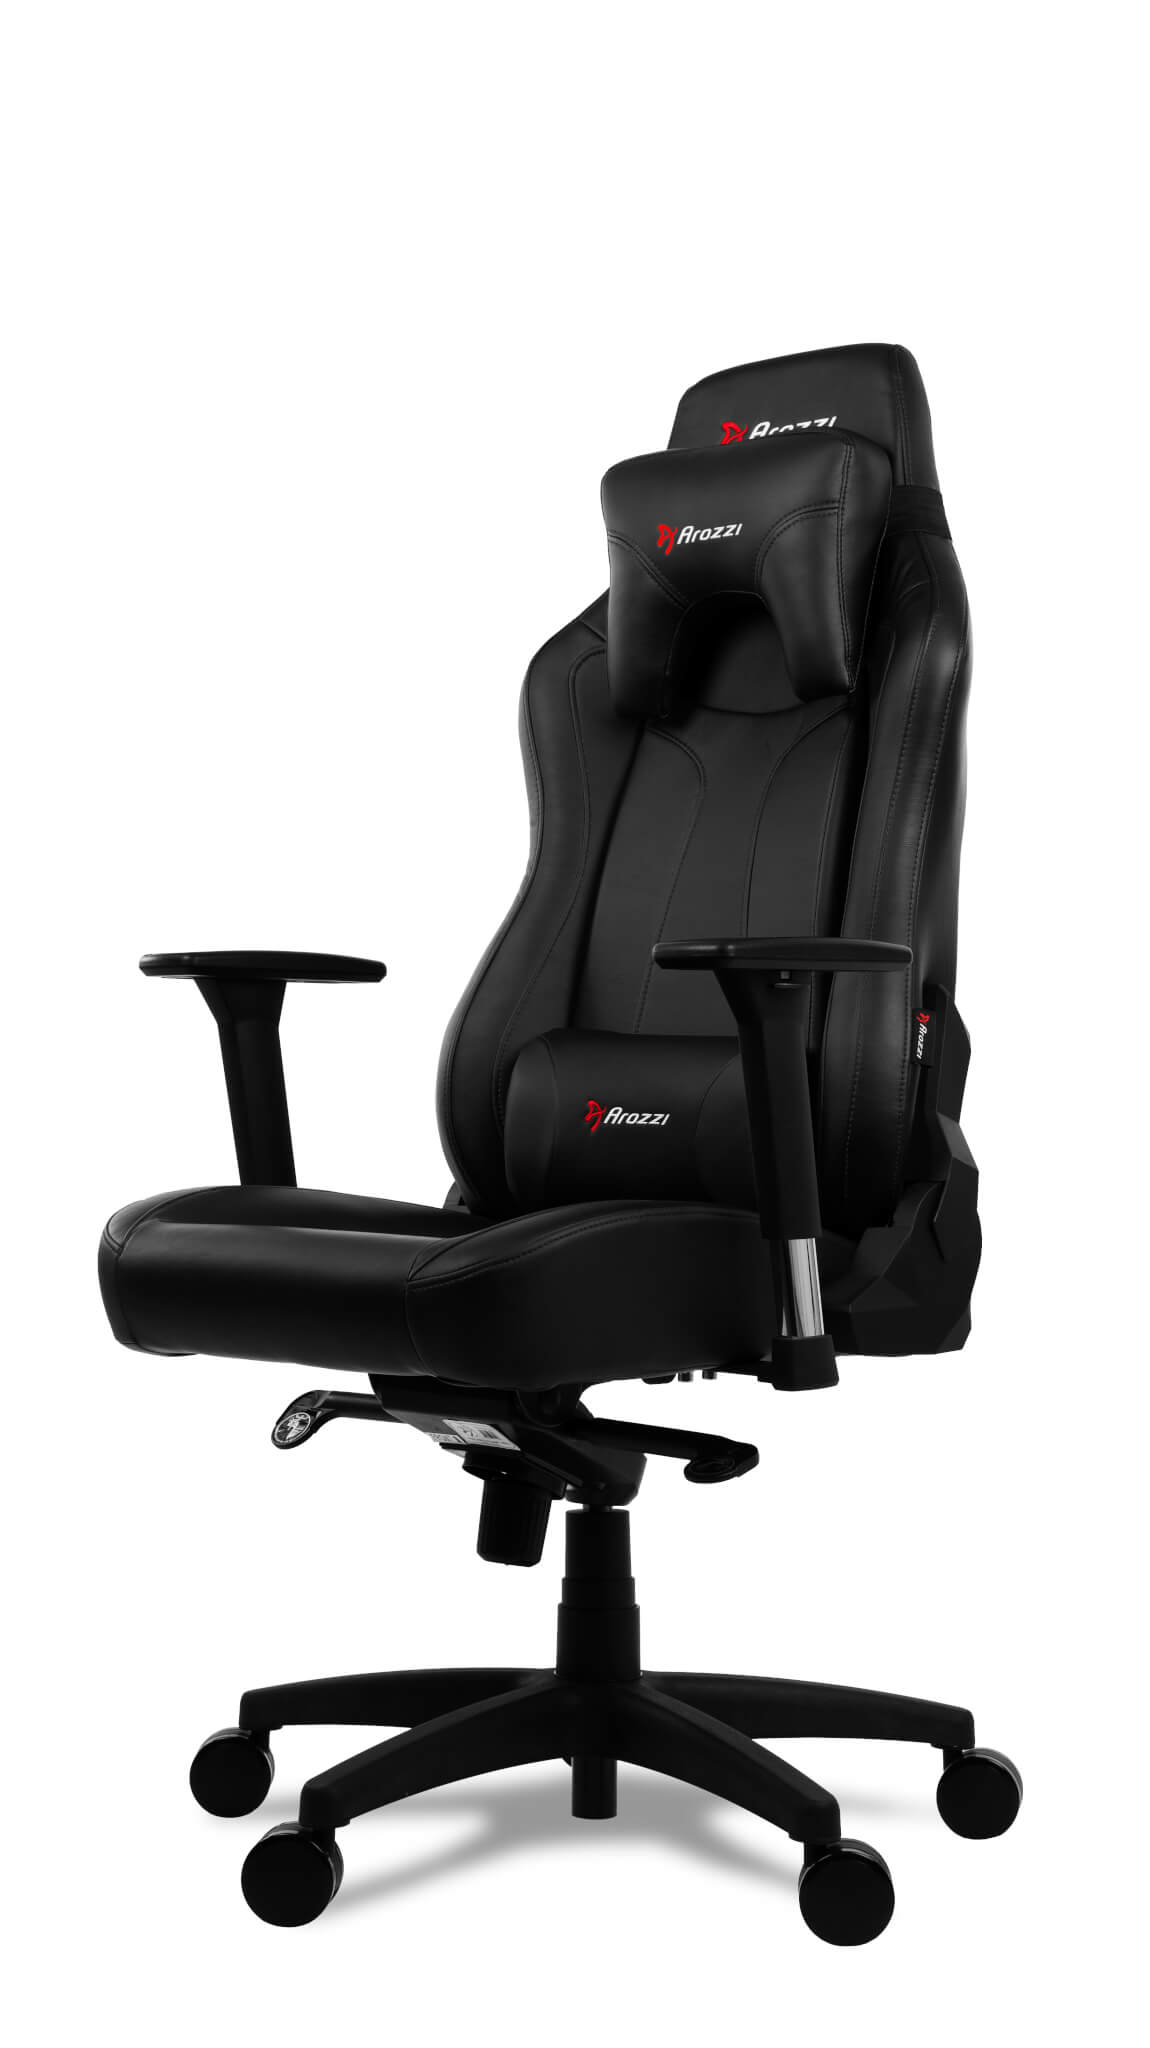 Arozzi Vernazza Gaming Chair Review: Premium Ergonomics for Thick Wallets